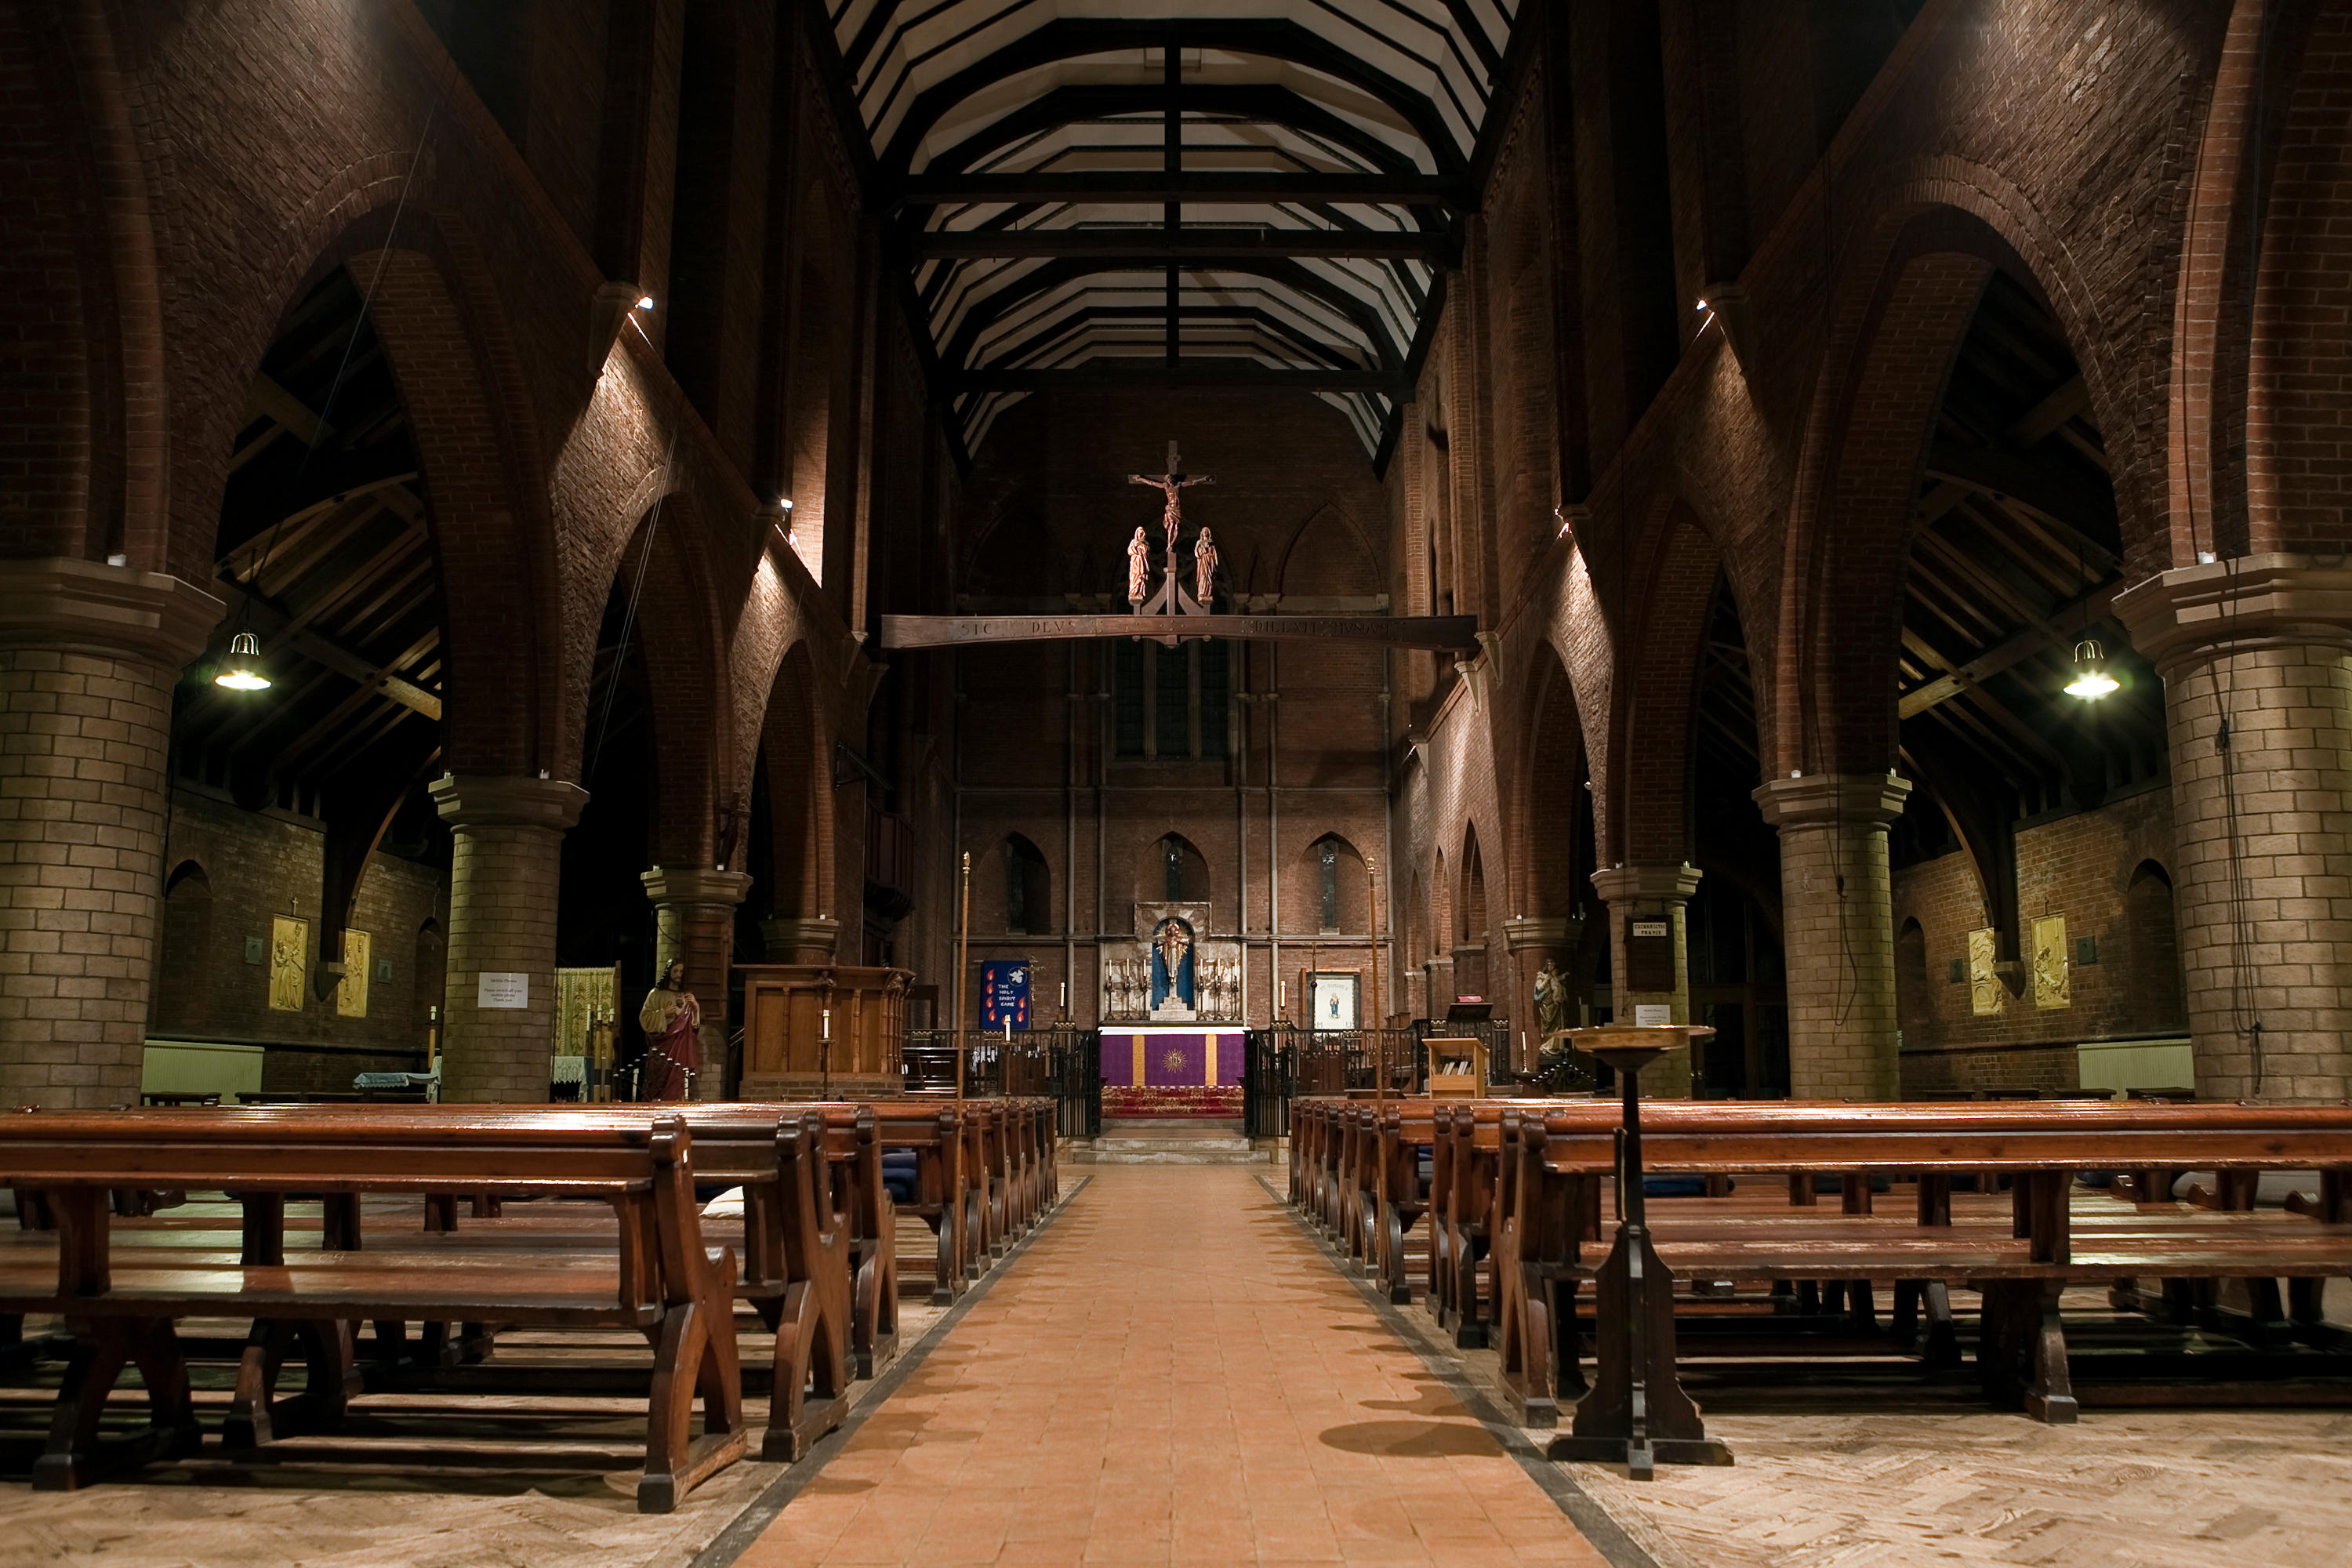 The spacious interior of St Osmund's